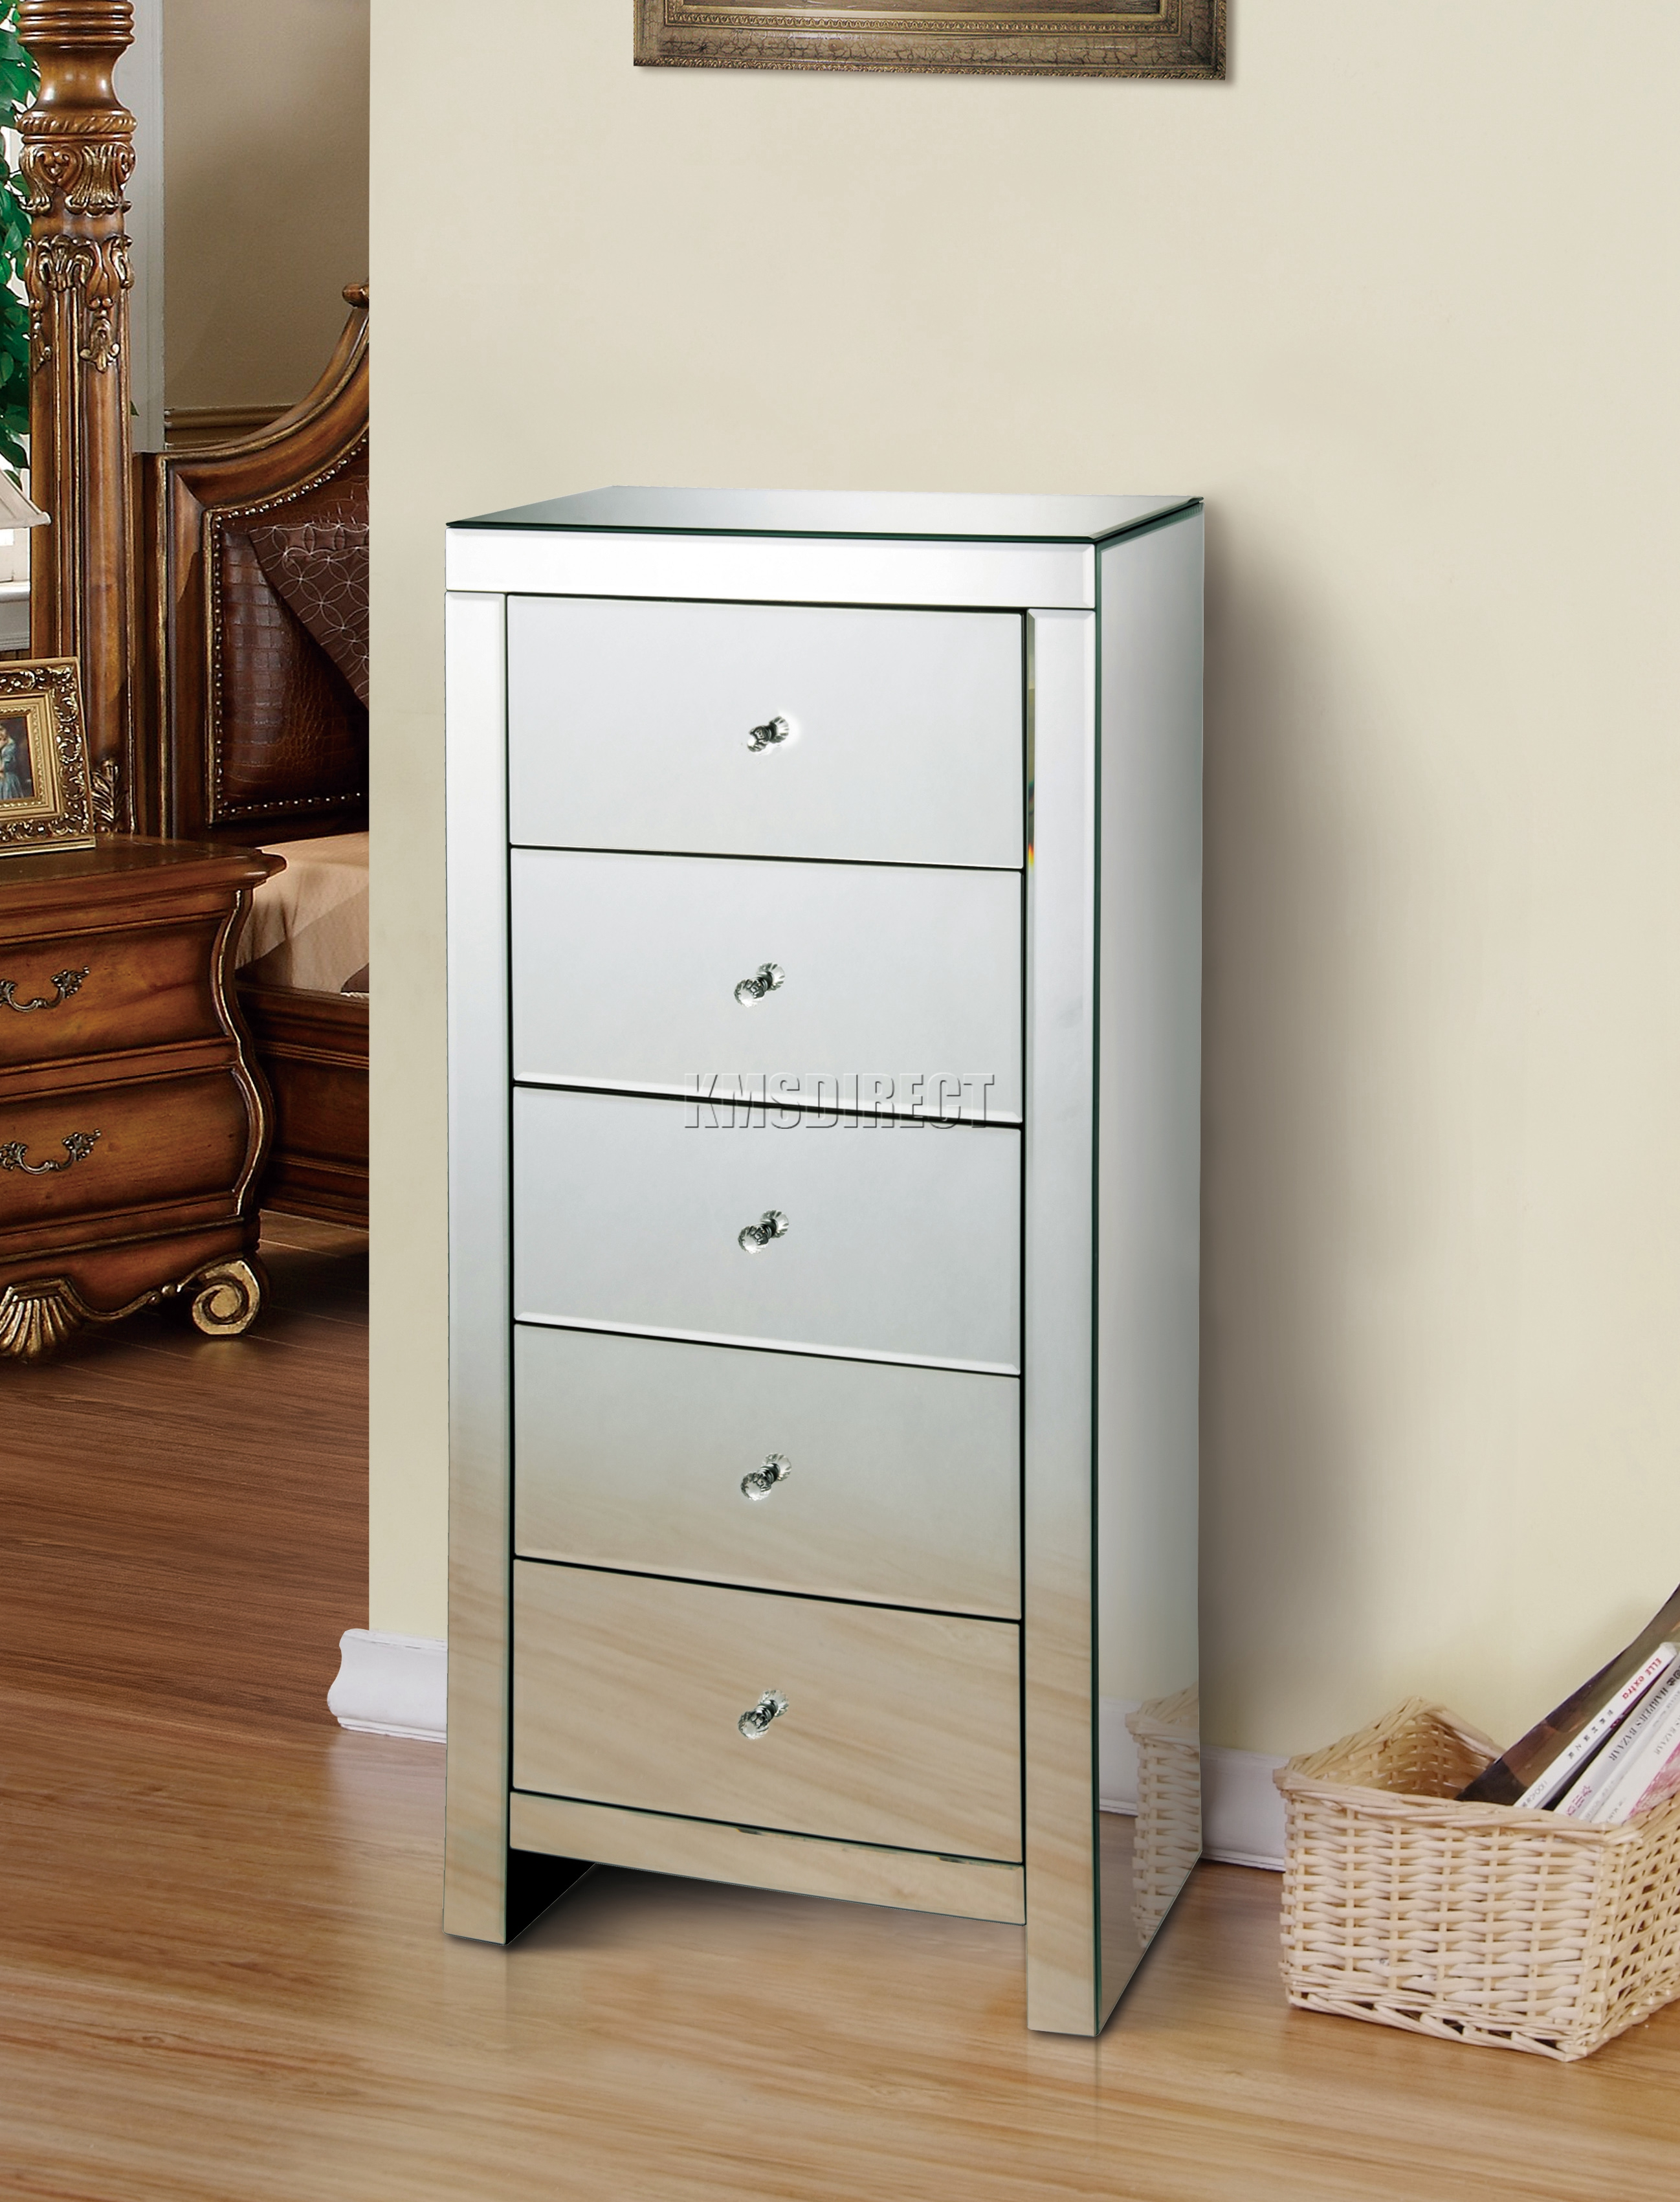 FoxHunter Mirrored Furniture Glass 5 Drawers Tallboy Chest Cabinet ...